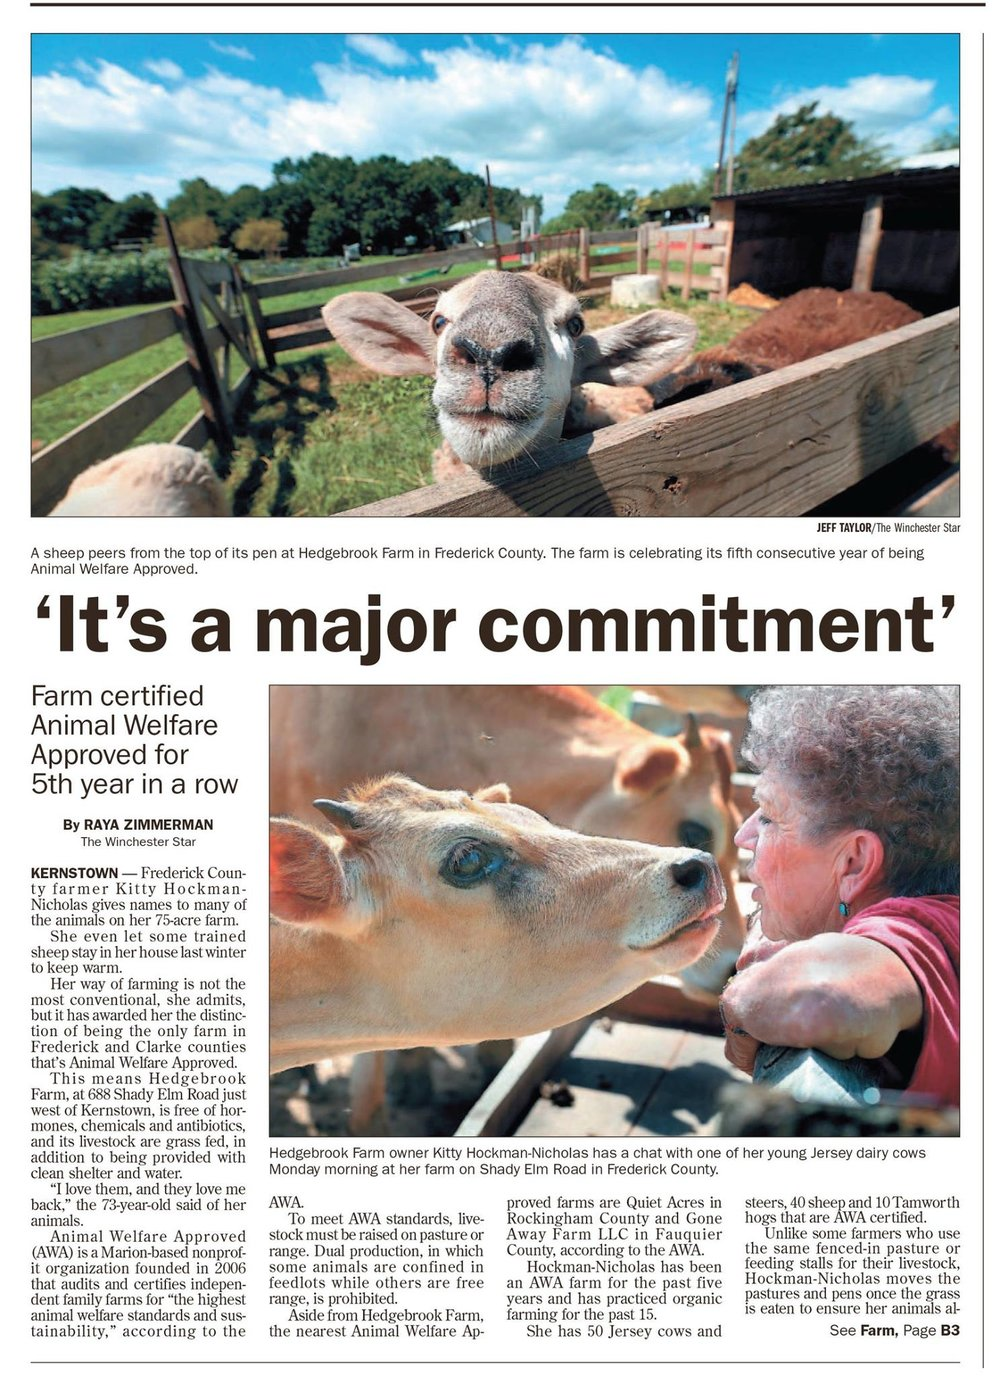 Image : a June 2015 article from The Winchester Star by Raya Zimmerman, click on images to enlarge